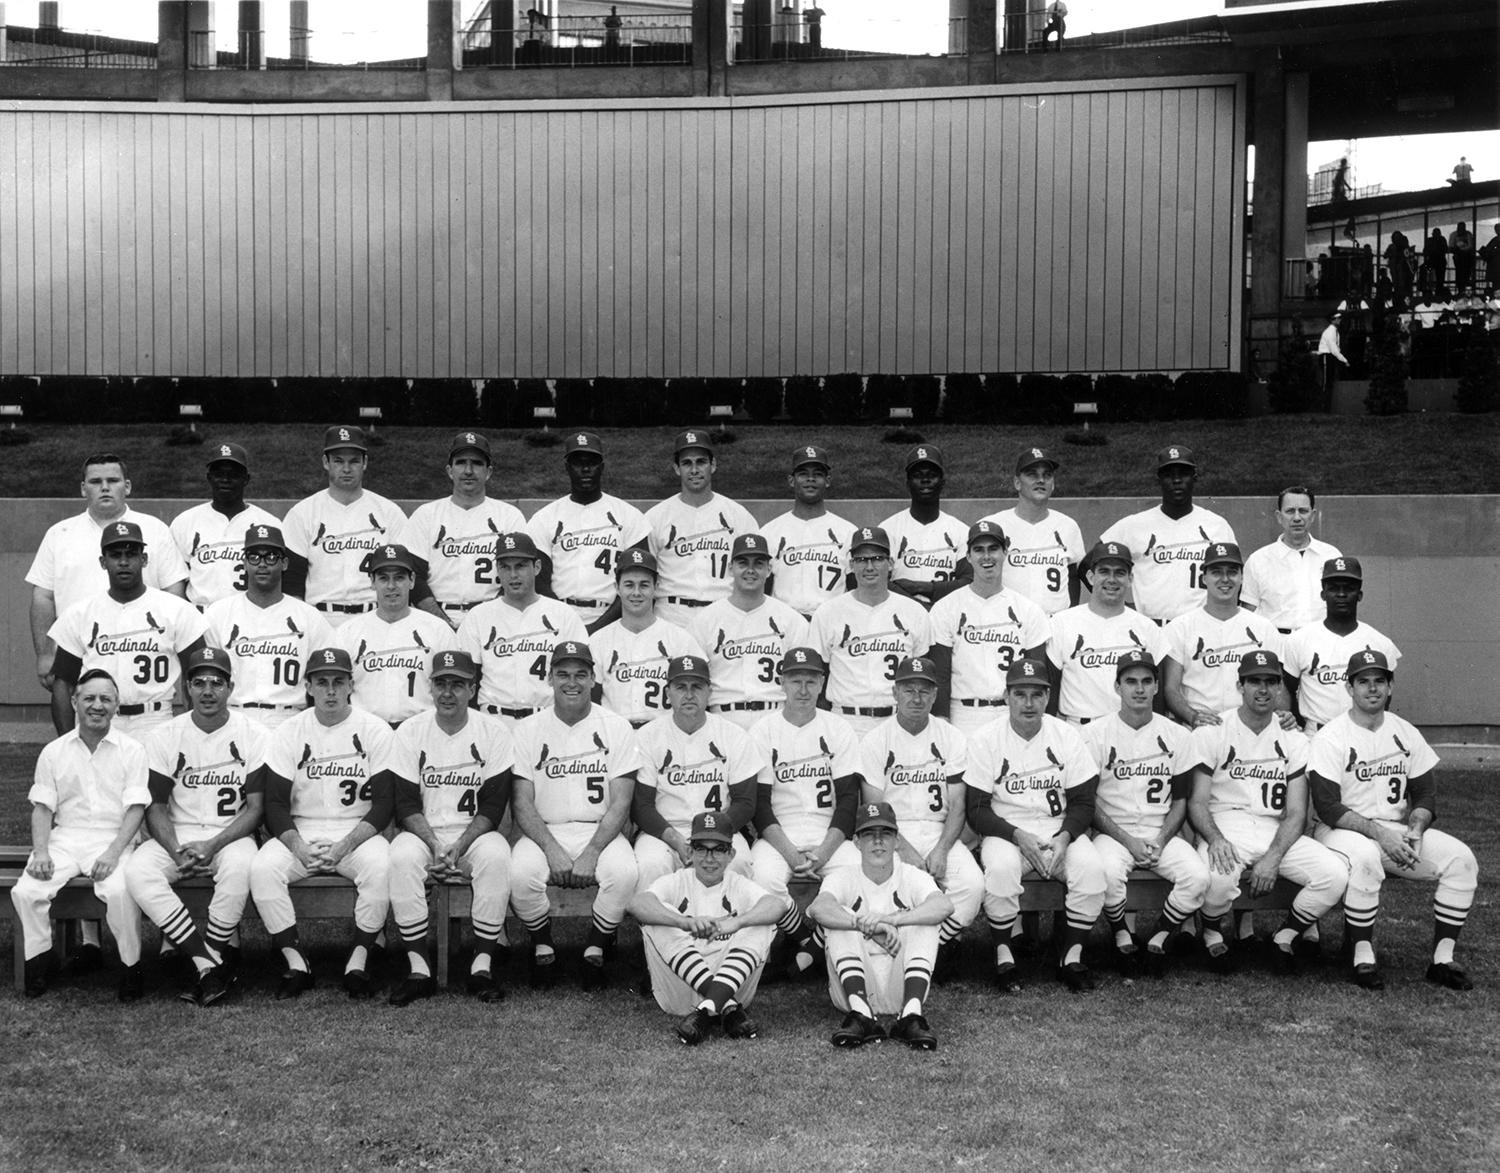 Bobby Tolan earned a spot as a No. 4 outfielder for the St. Louis Cardinals in 1967. He is pictured above, fifth from the right in the top row. (National Baseball Hall of Fame and Museum)